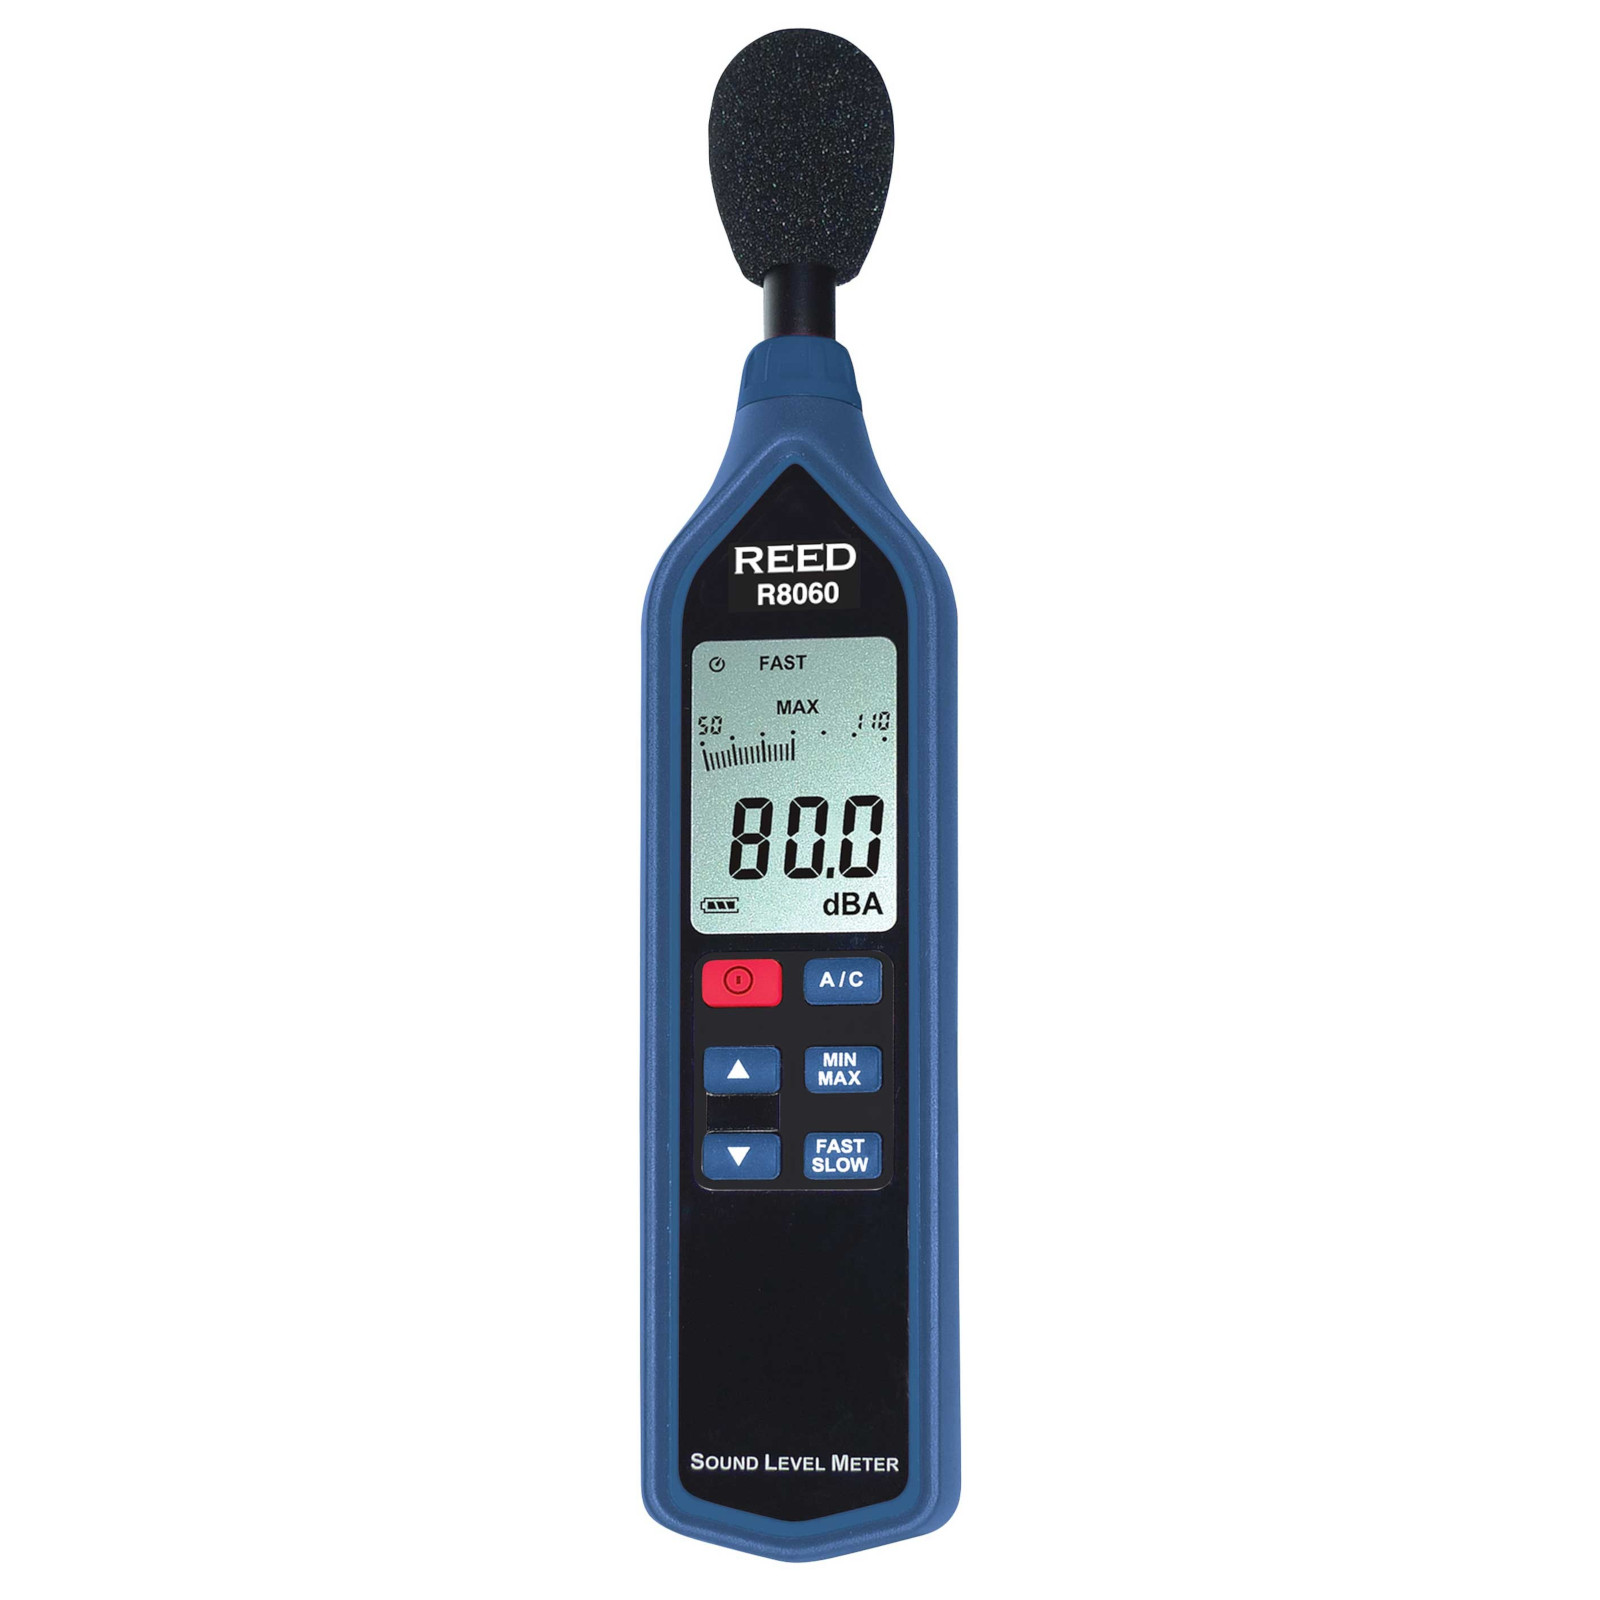 Reed Instruments R8060 Sound Level Meter Type 2 with Bargraph